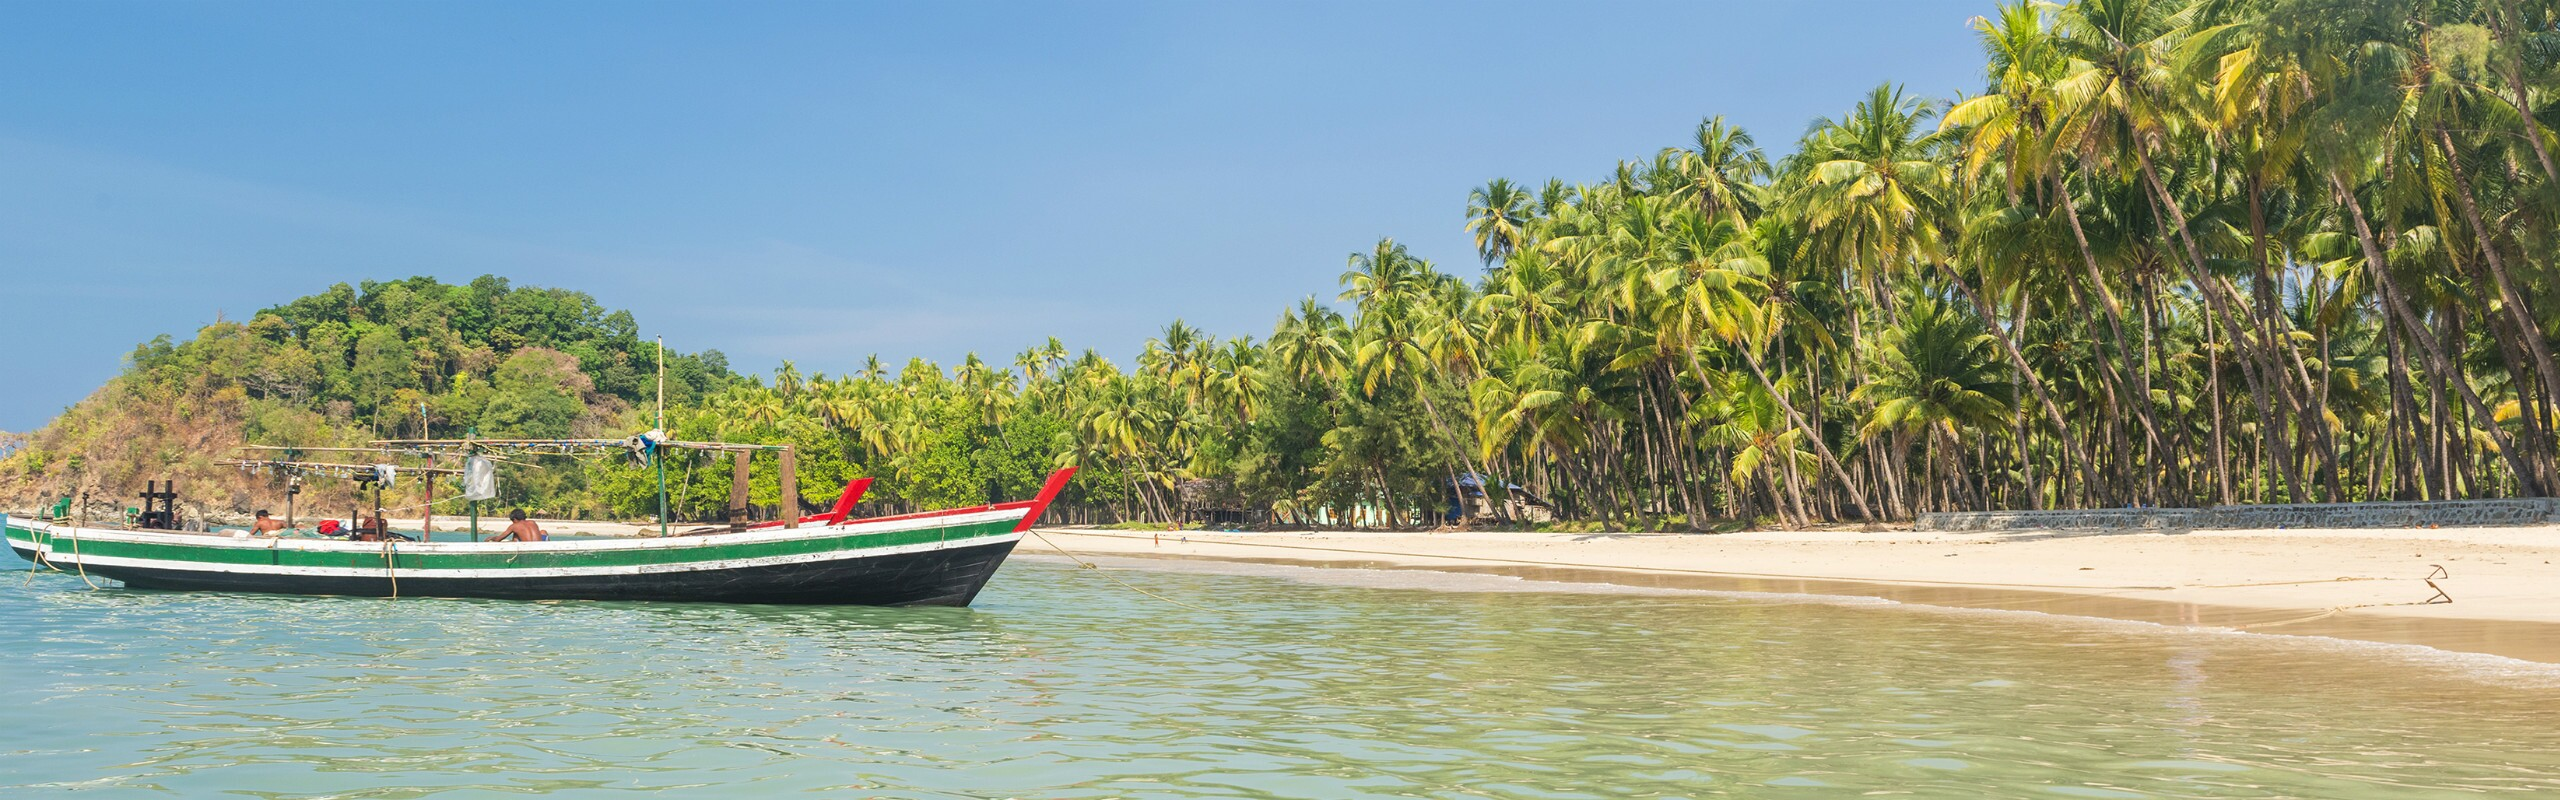 Top Things to Do in Ngapali - Enjoy Pristine Beach